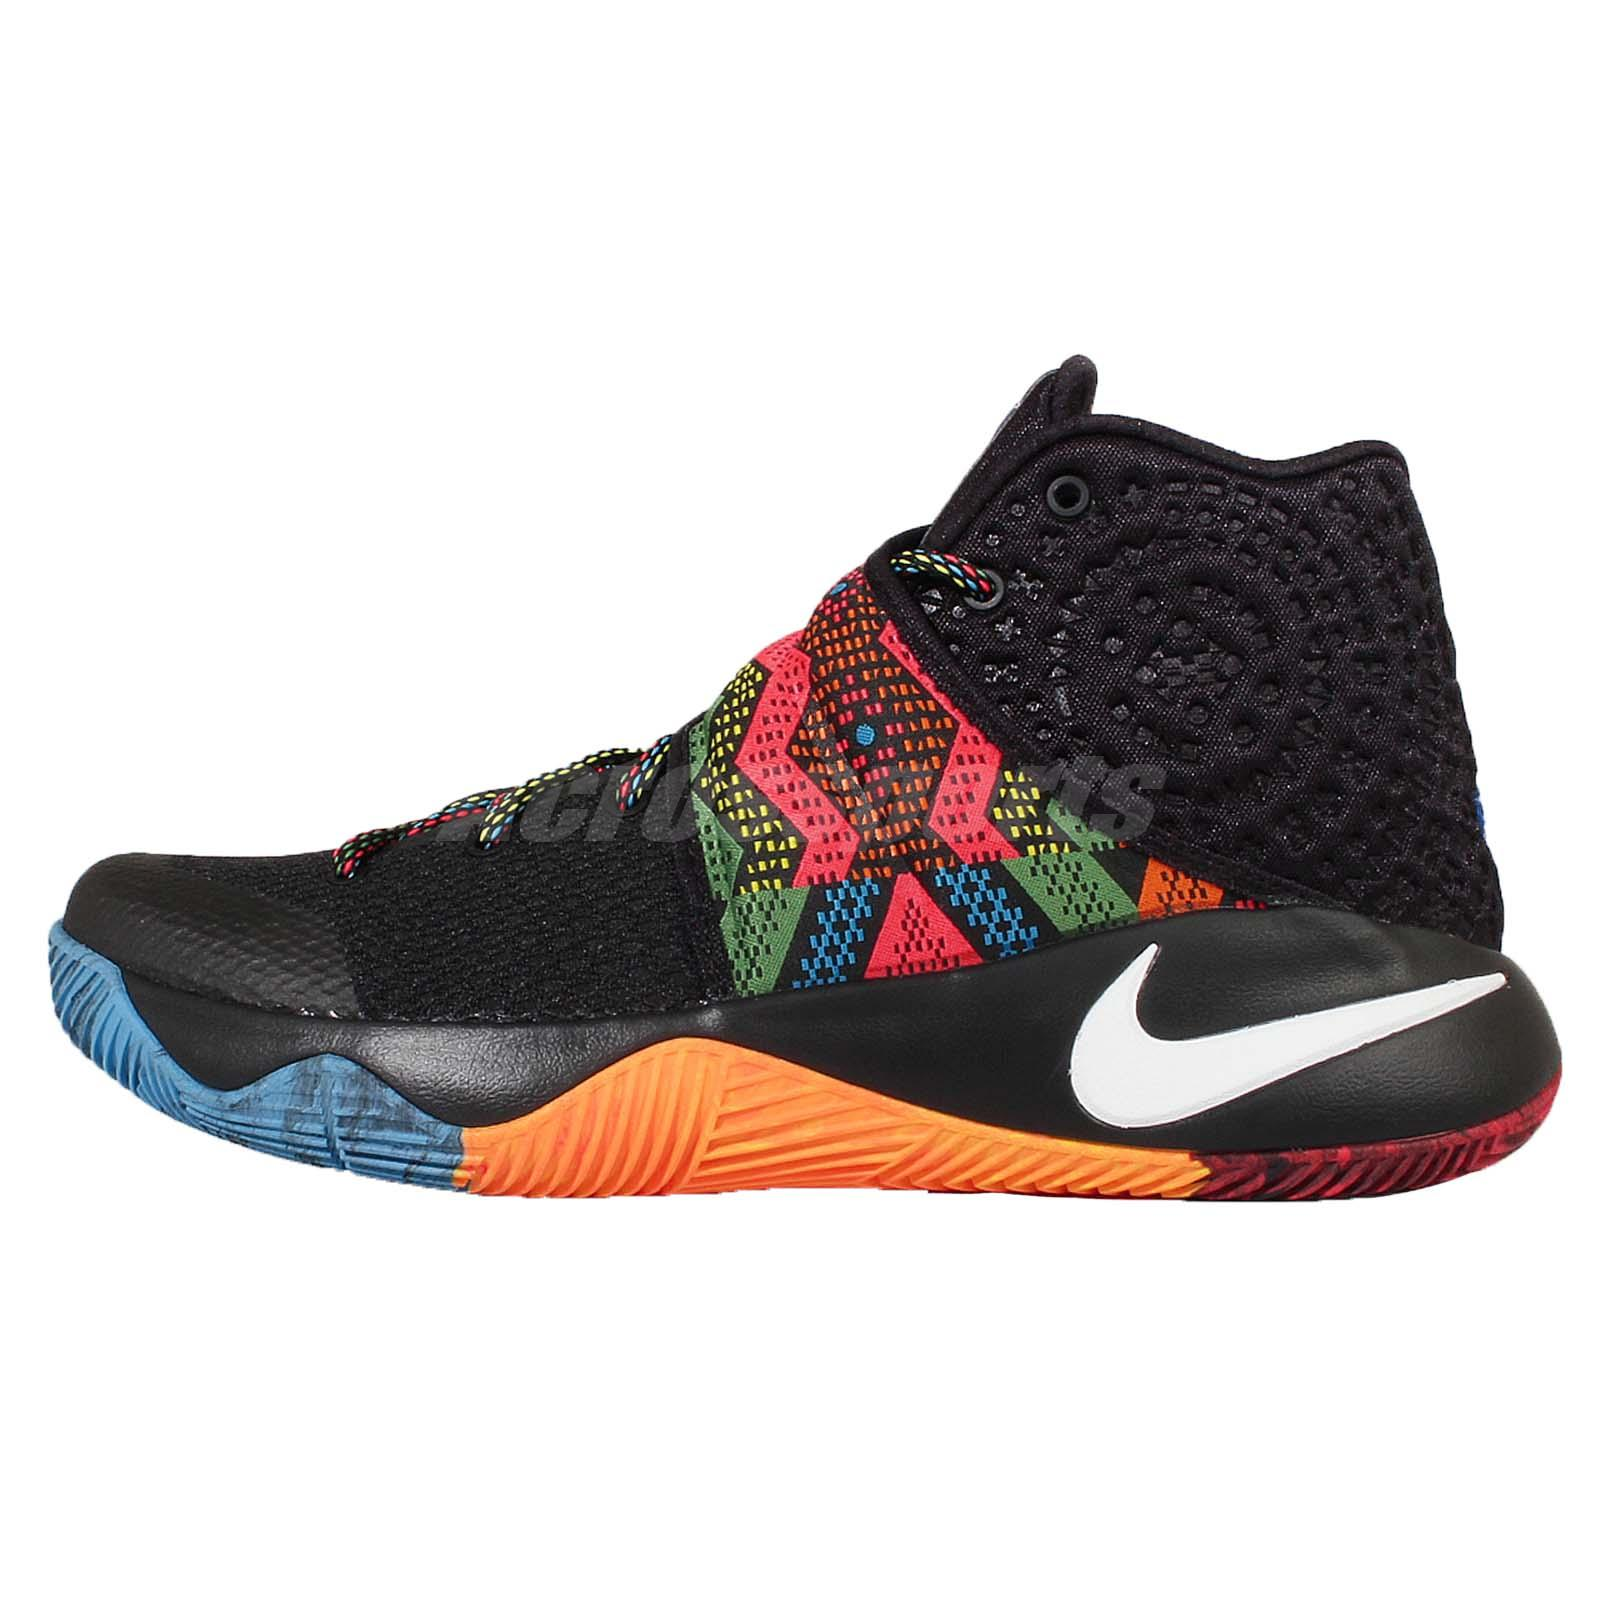 Olympia Sports Basketball Shoes Kyrie